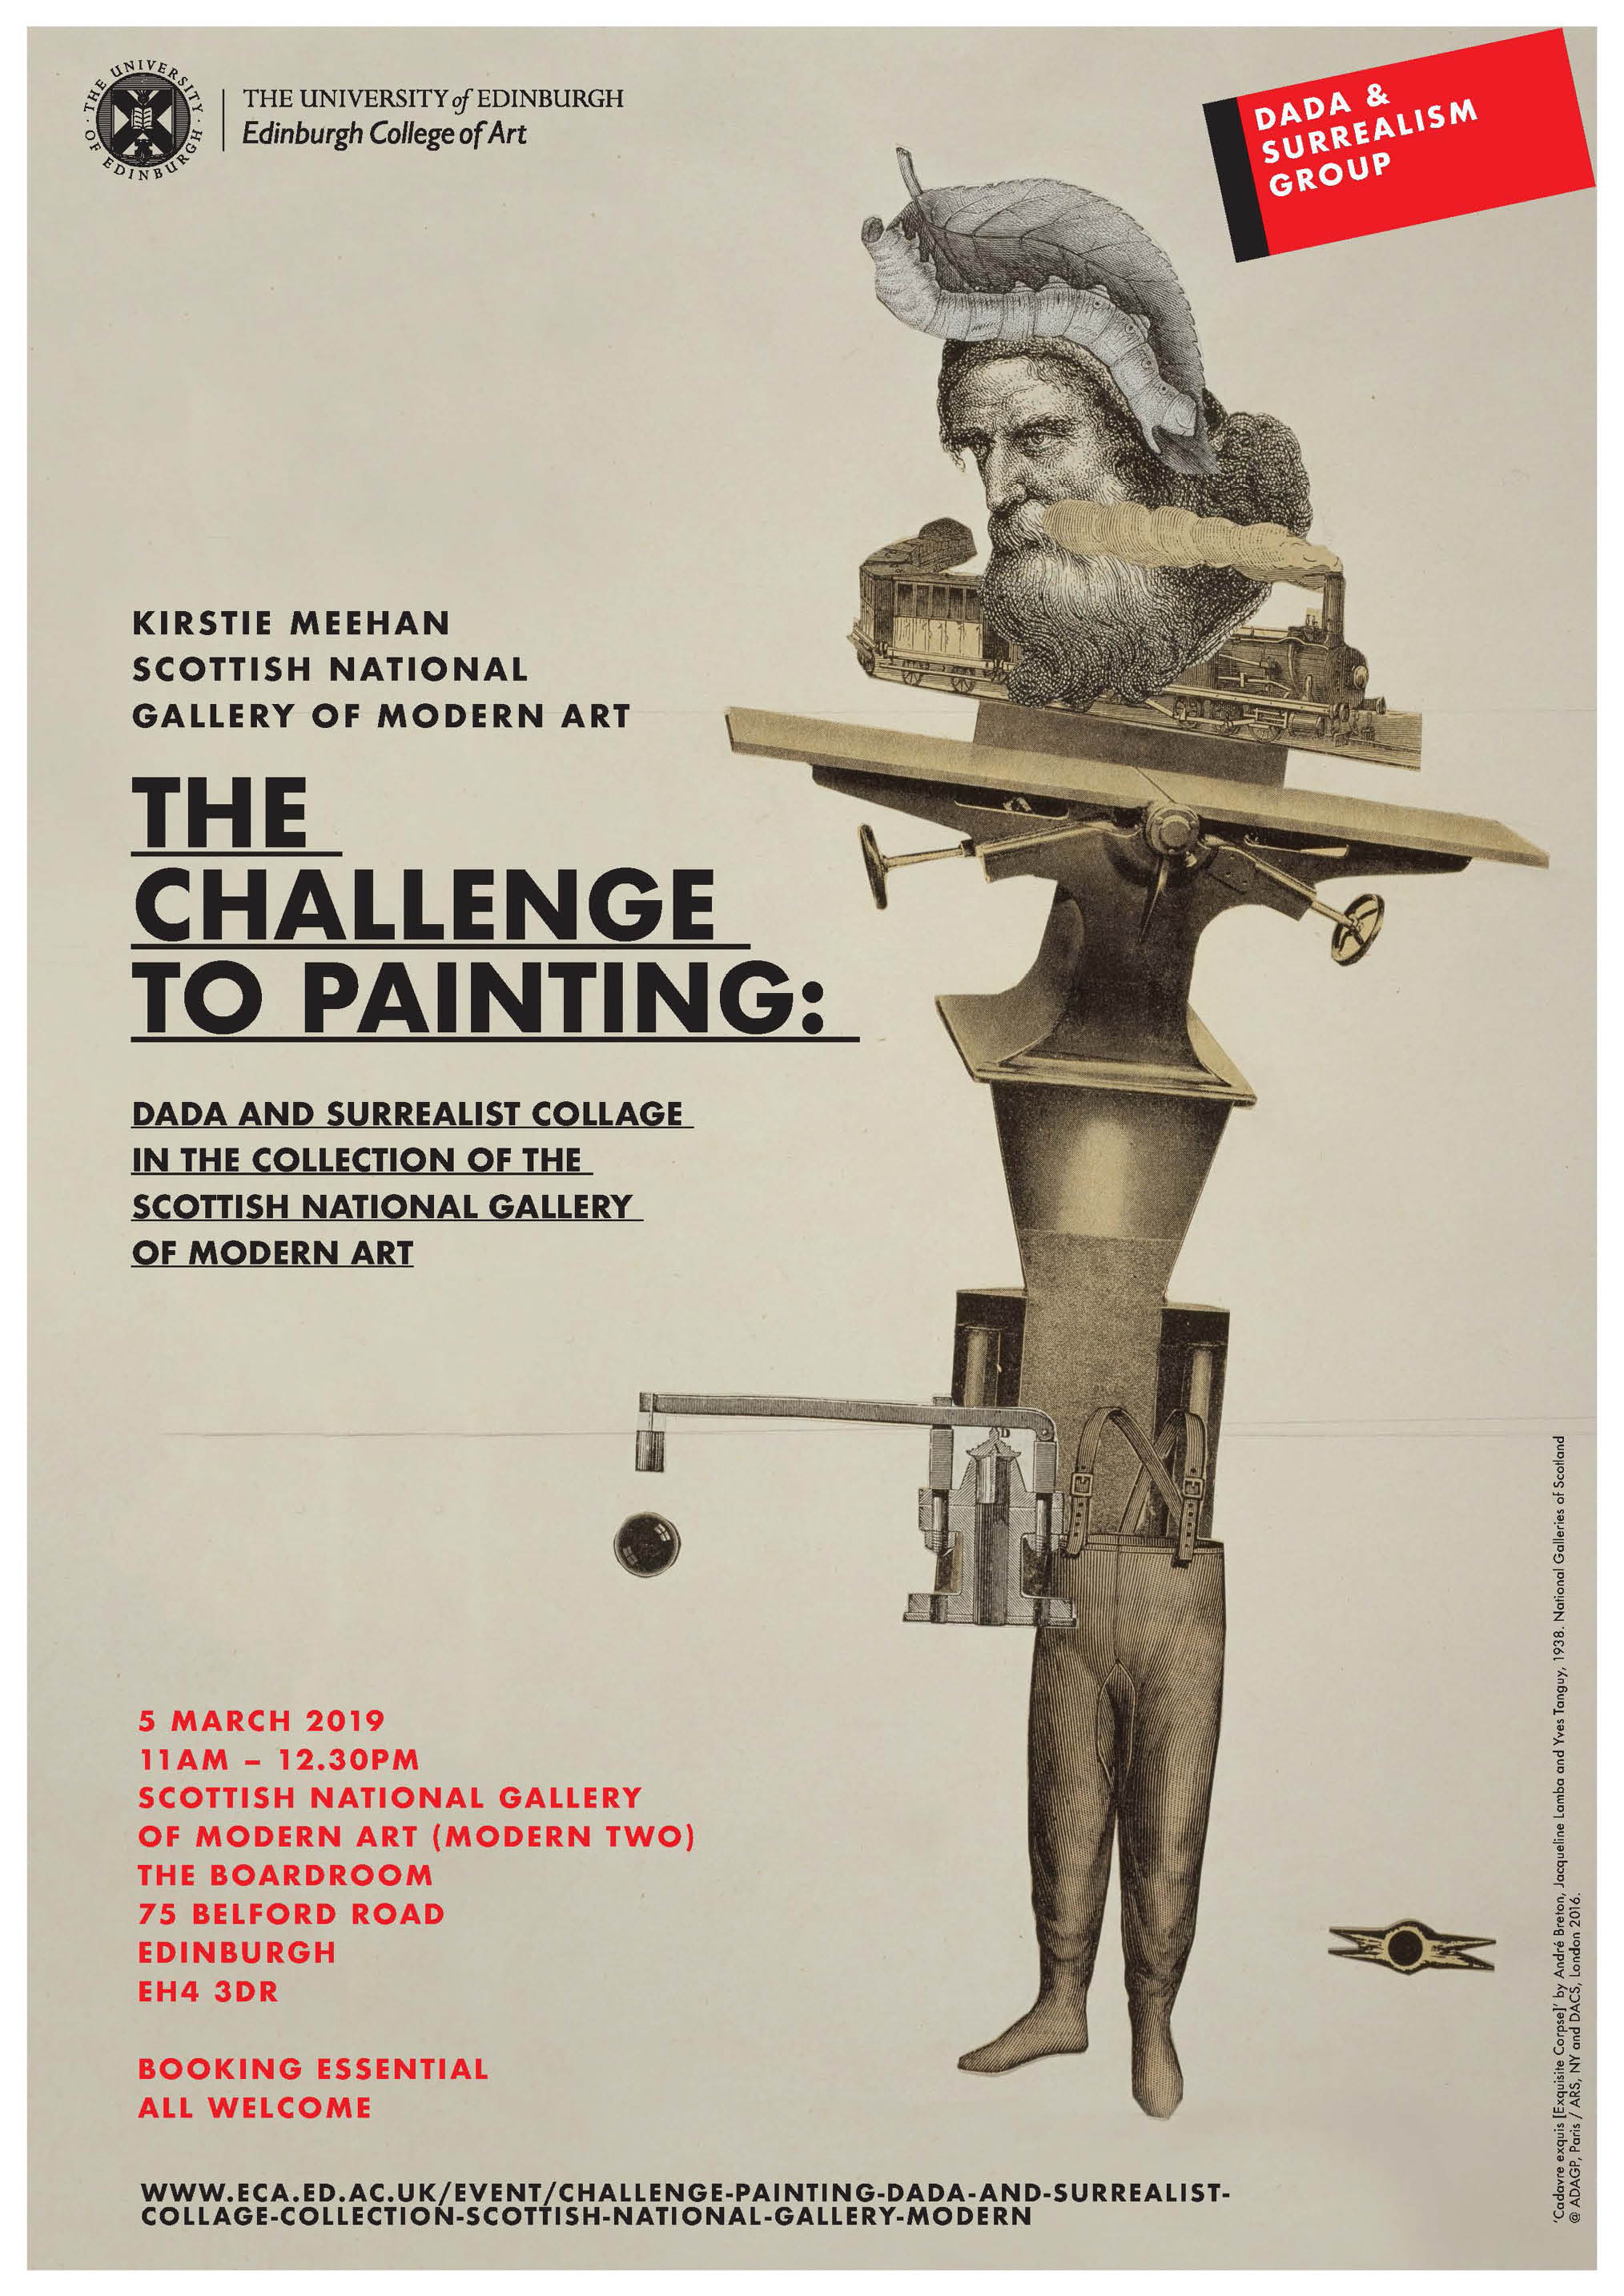 The Challenge to Painting: Dada and Surrealist Collage in the Collection of the Scottish National Gallery of Modern Art